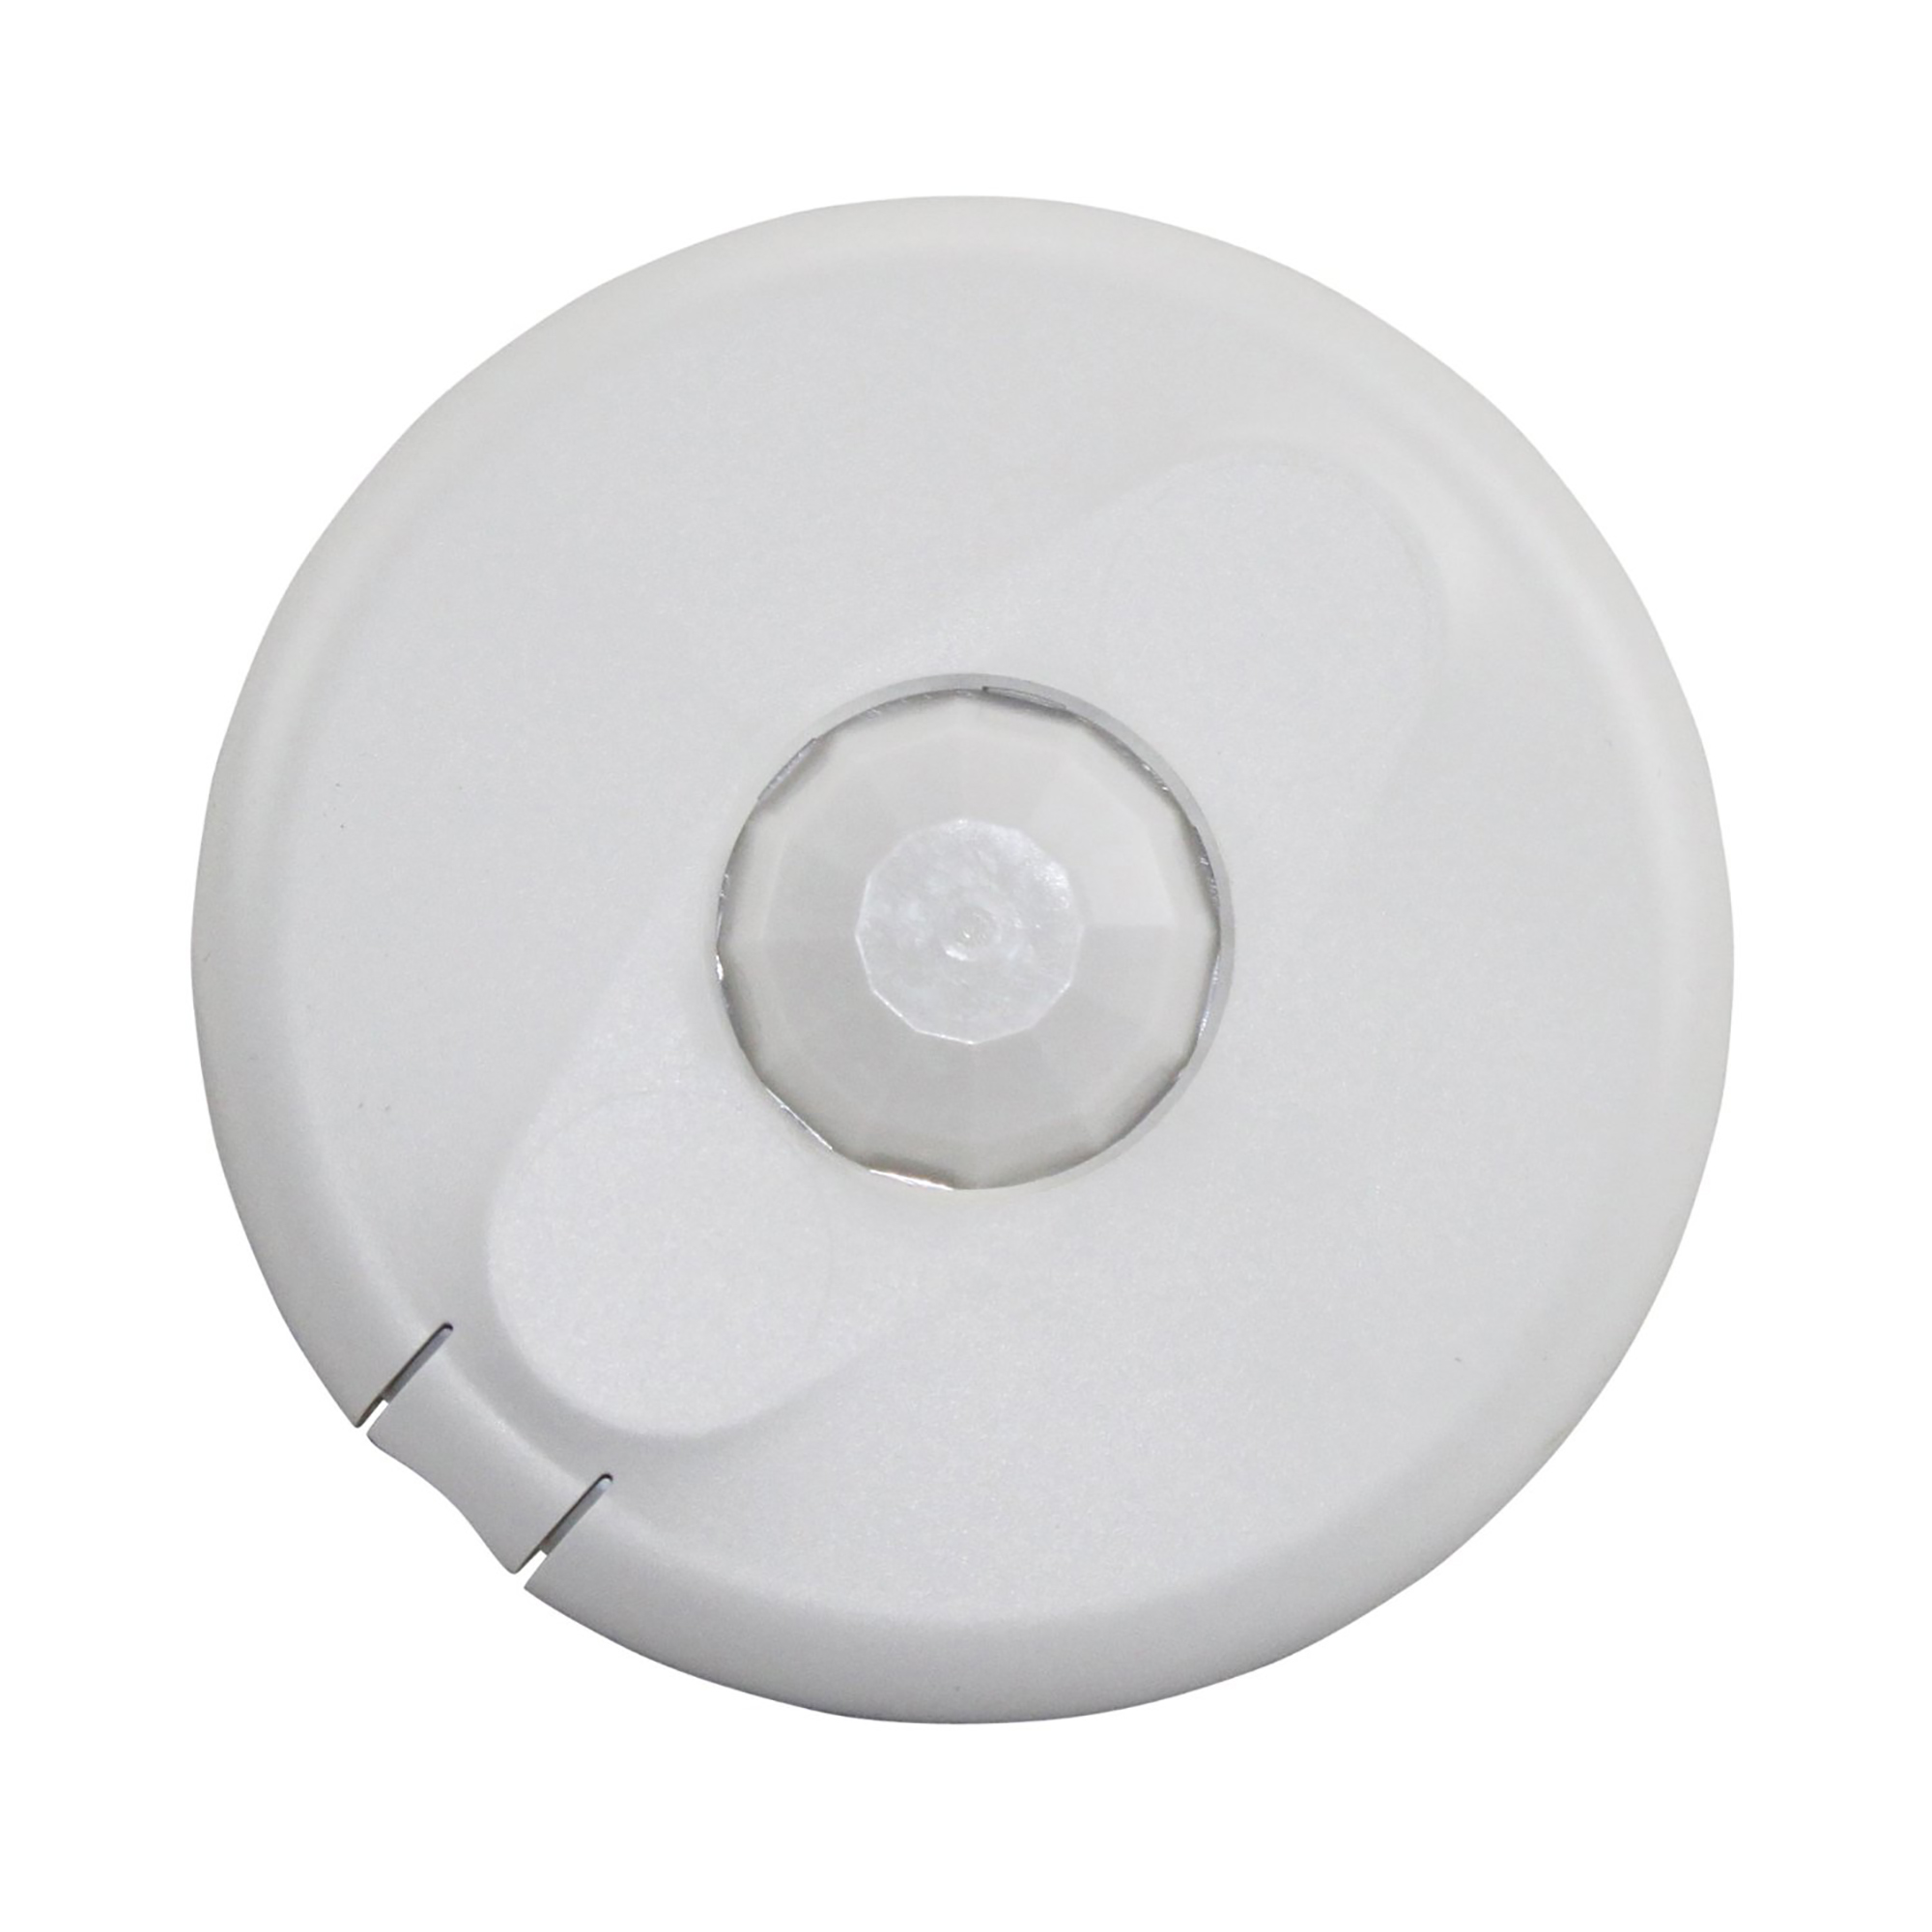 Wattstopper Occupancy Sensor Ceiling